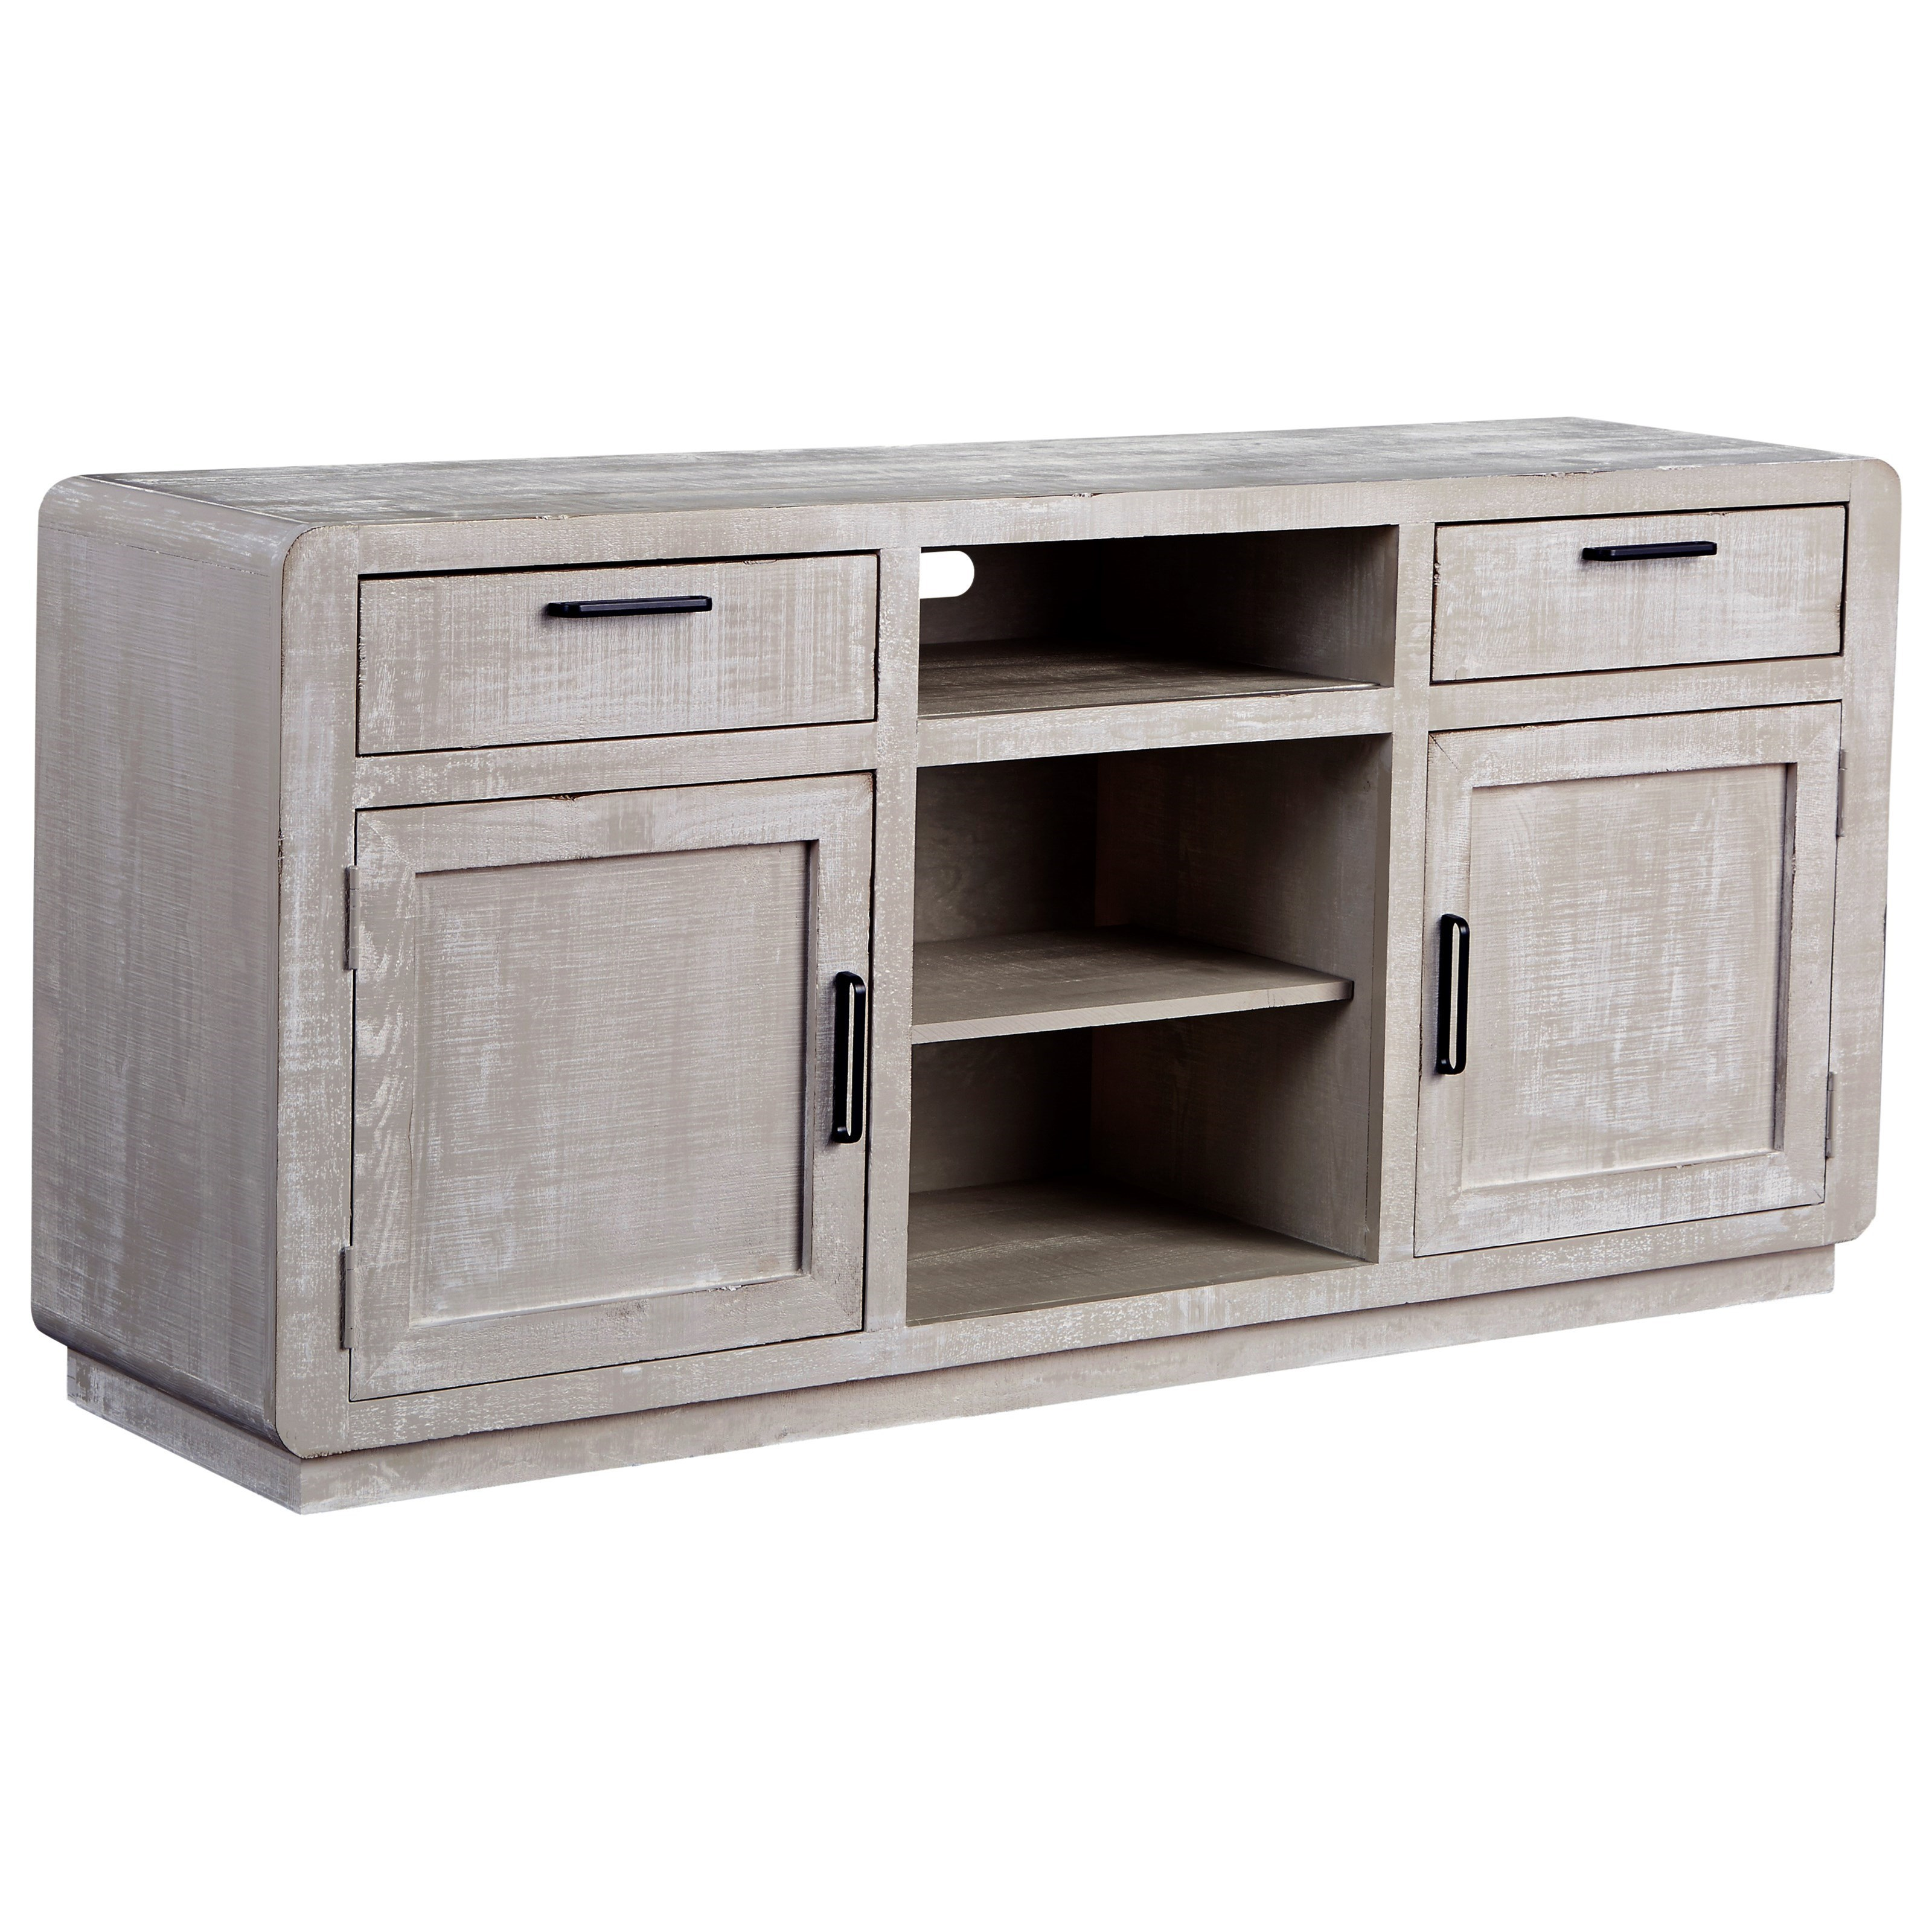 "Allure 64"" Console by Progressive Furniture at Carolina Direct"